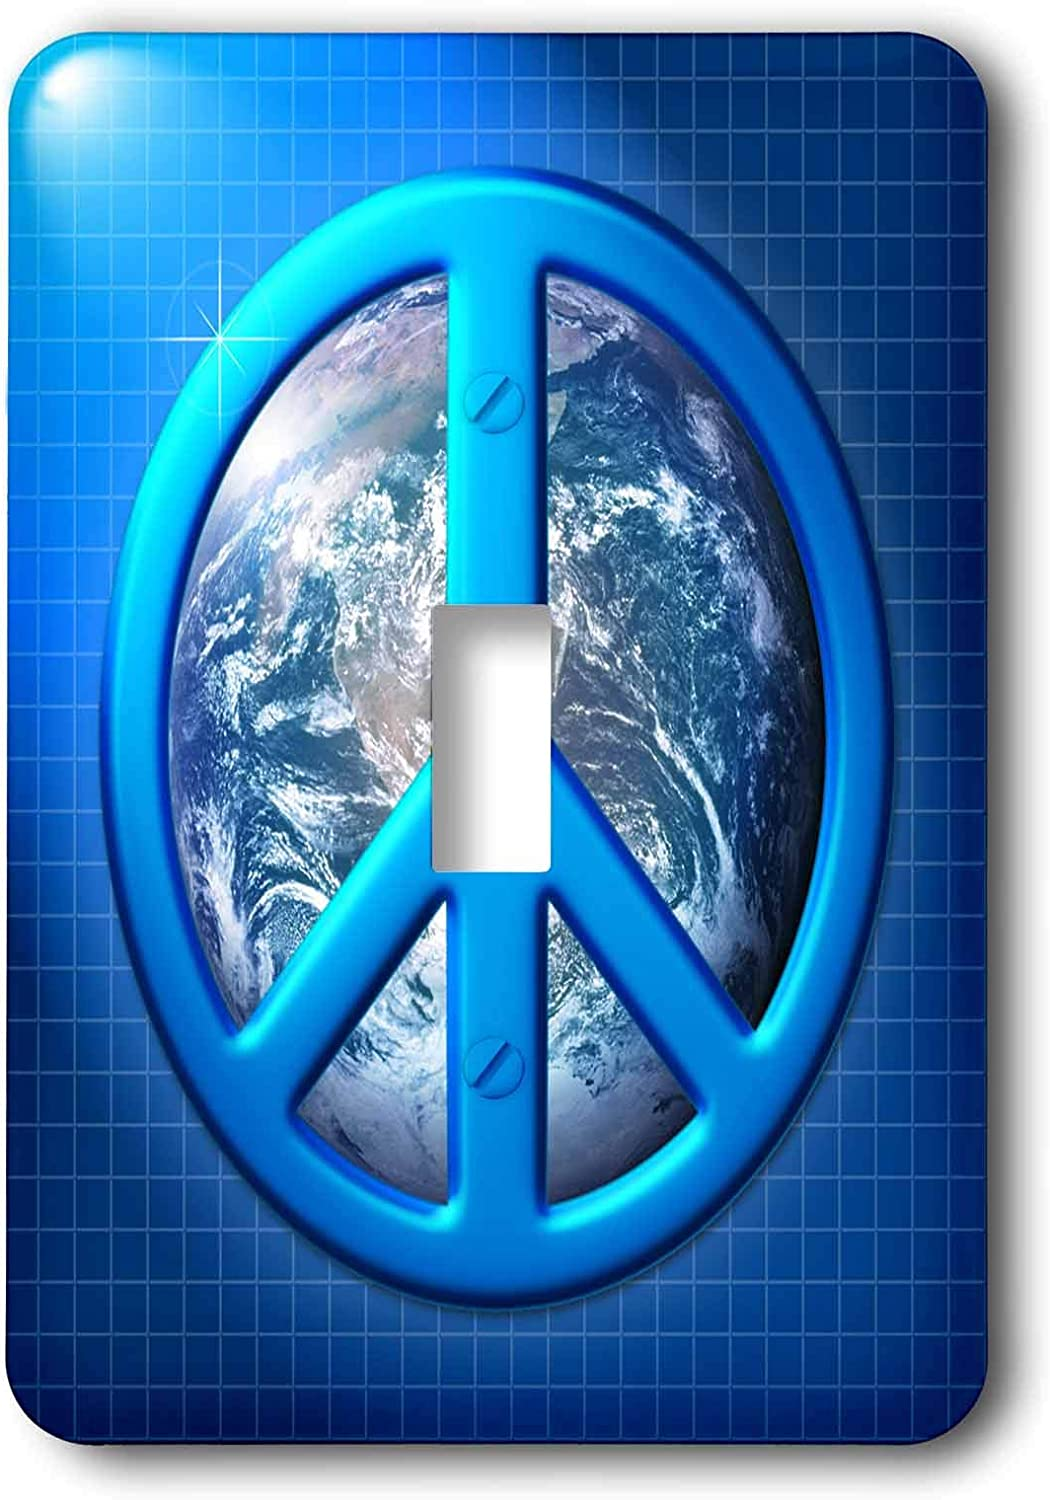 3drose Lsp 18146 1 Large Blue Peace Sign Over The Planet Earth Single Toggle Switch Switch And Outlet Plates Amazon Com